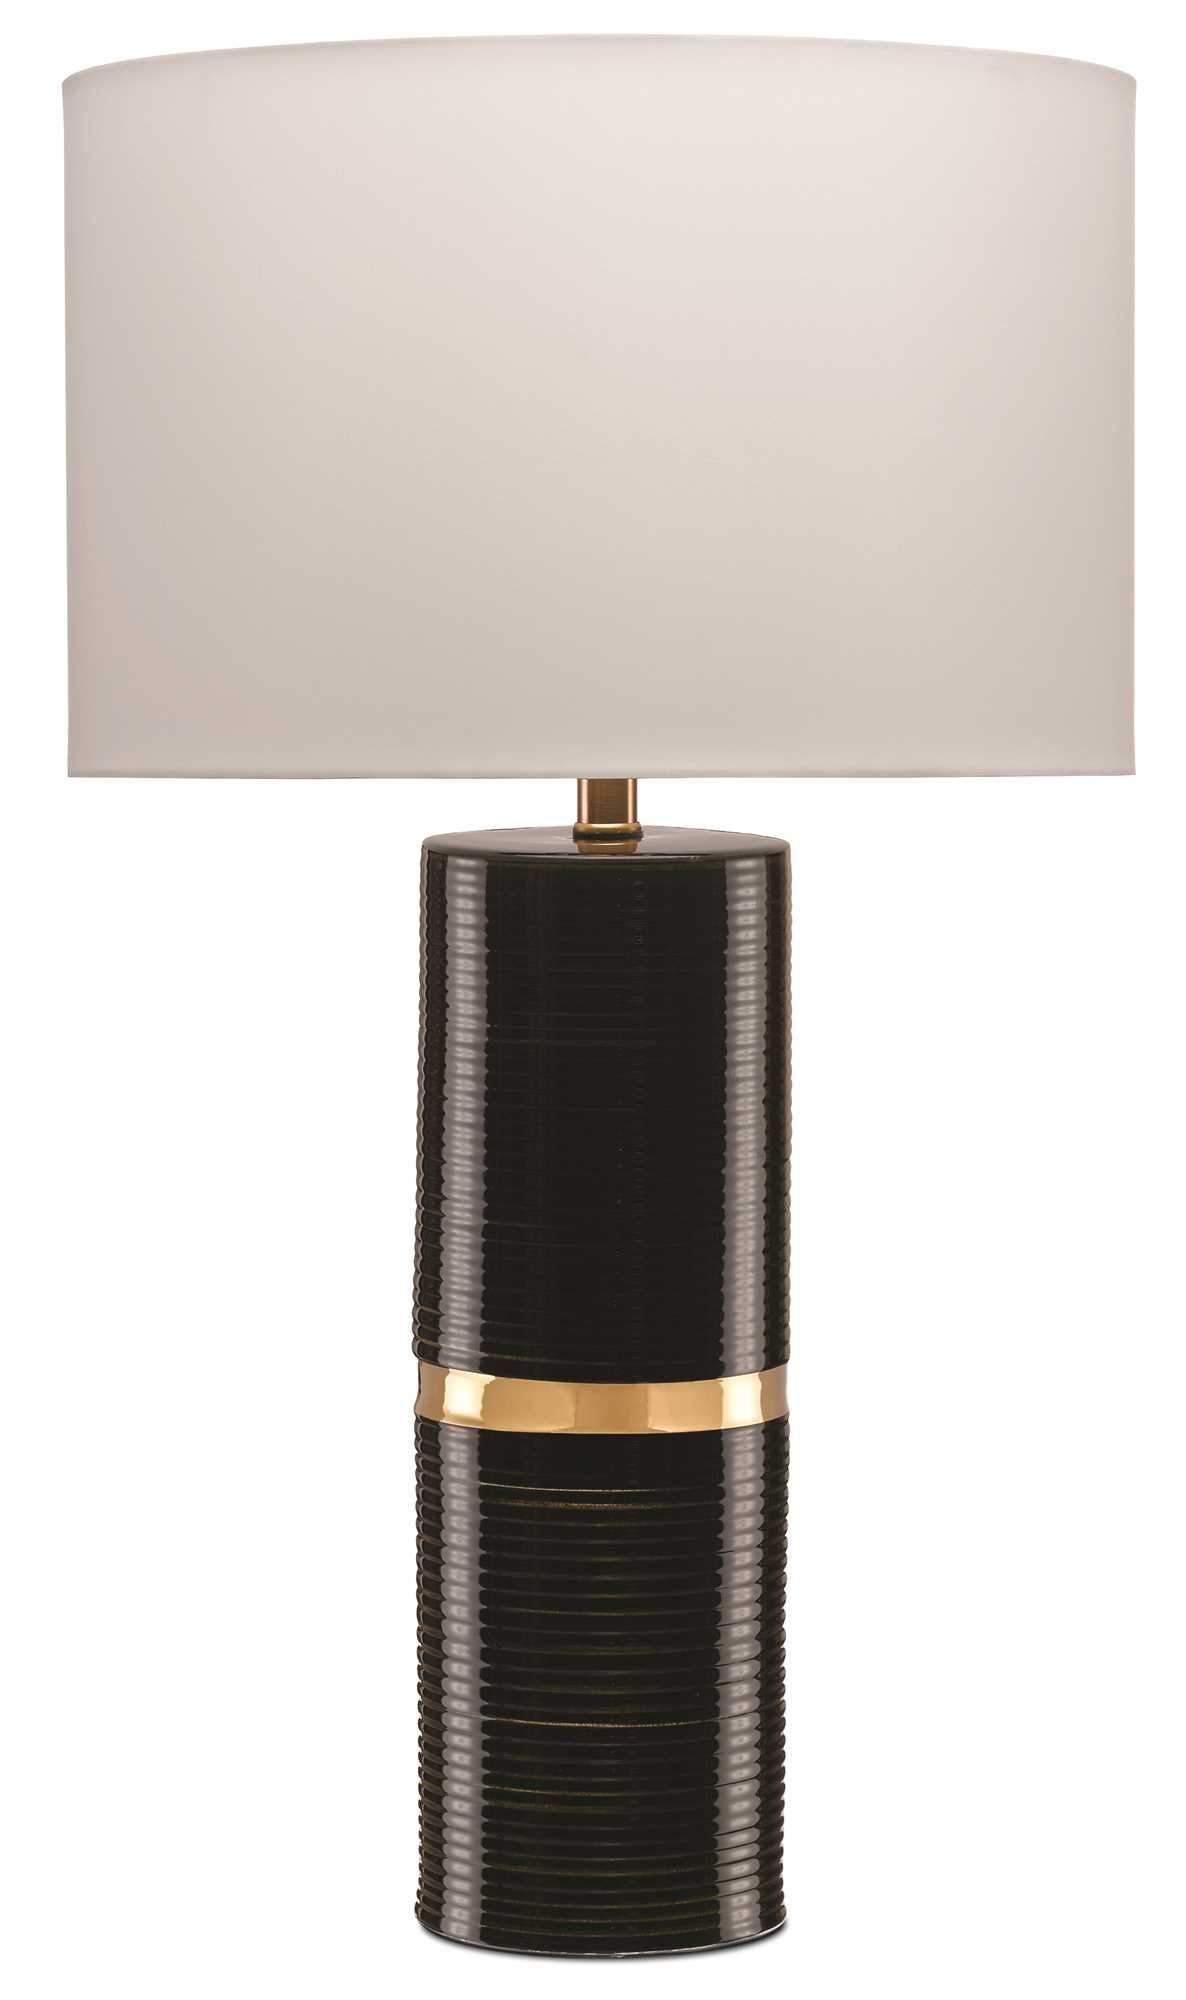 The Column Of The Enzo Table Lamp By Currey And Company Is